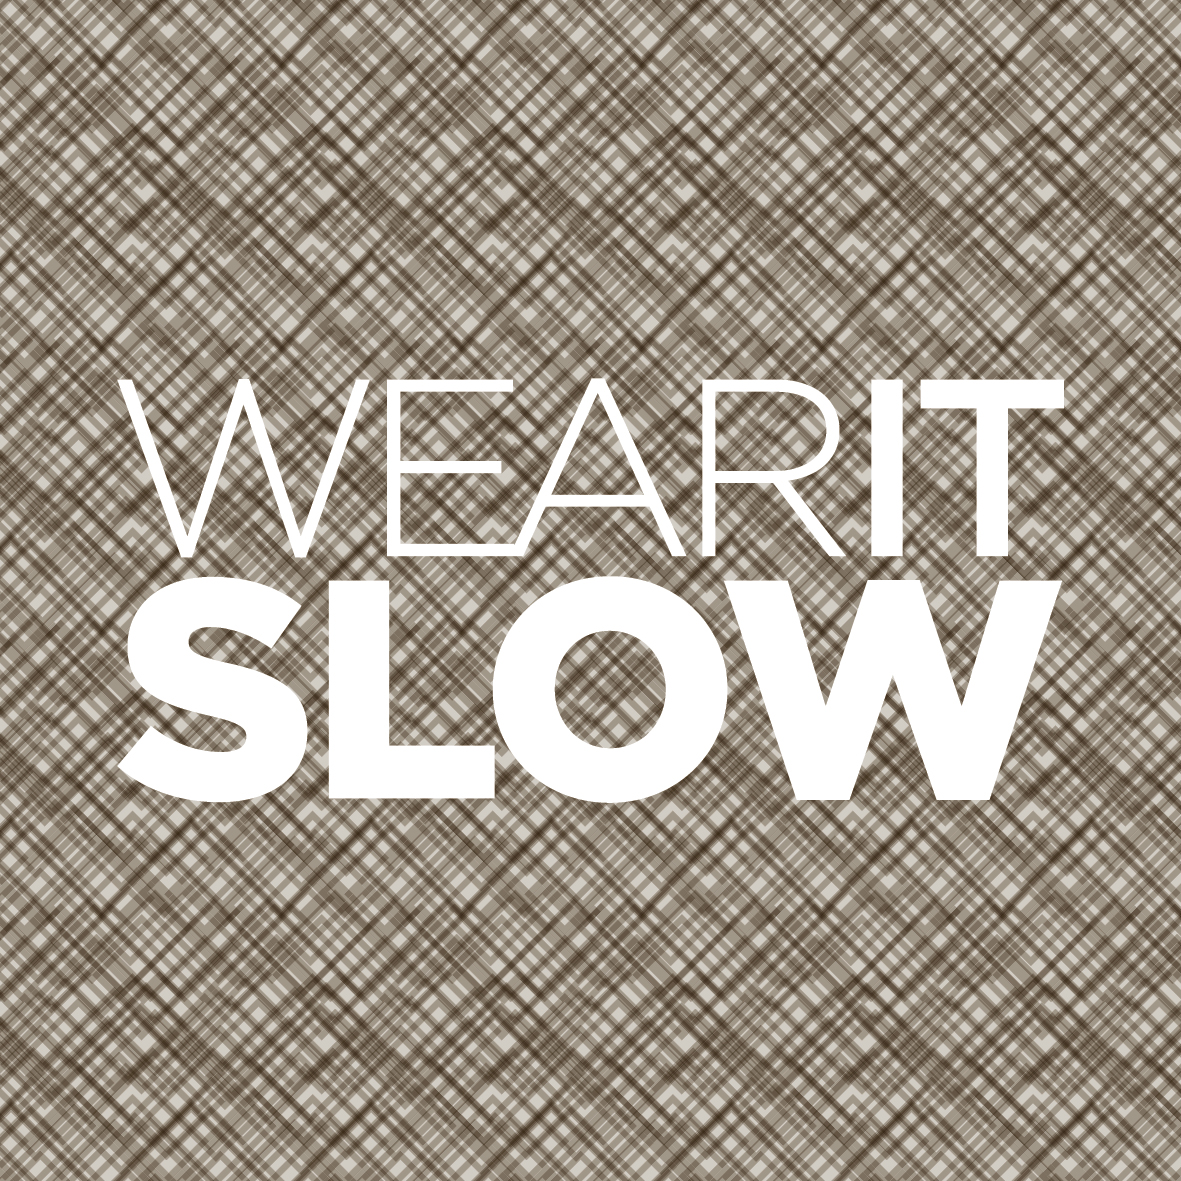 03_LOGO_WEARITSLOW